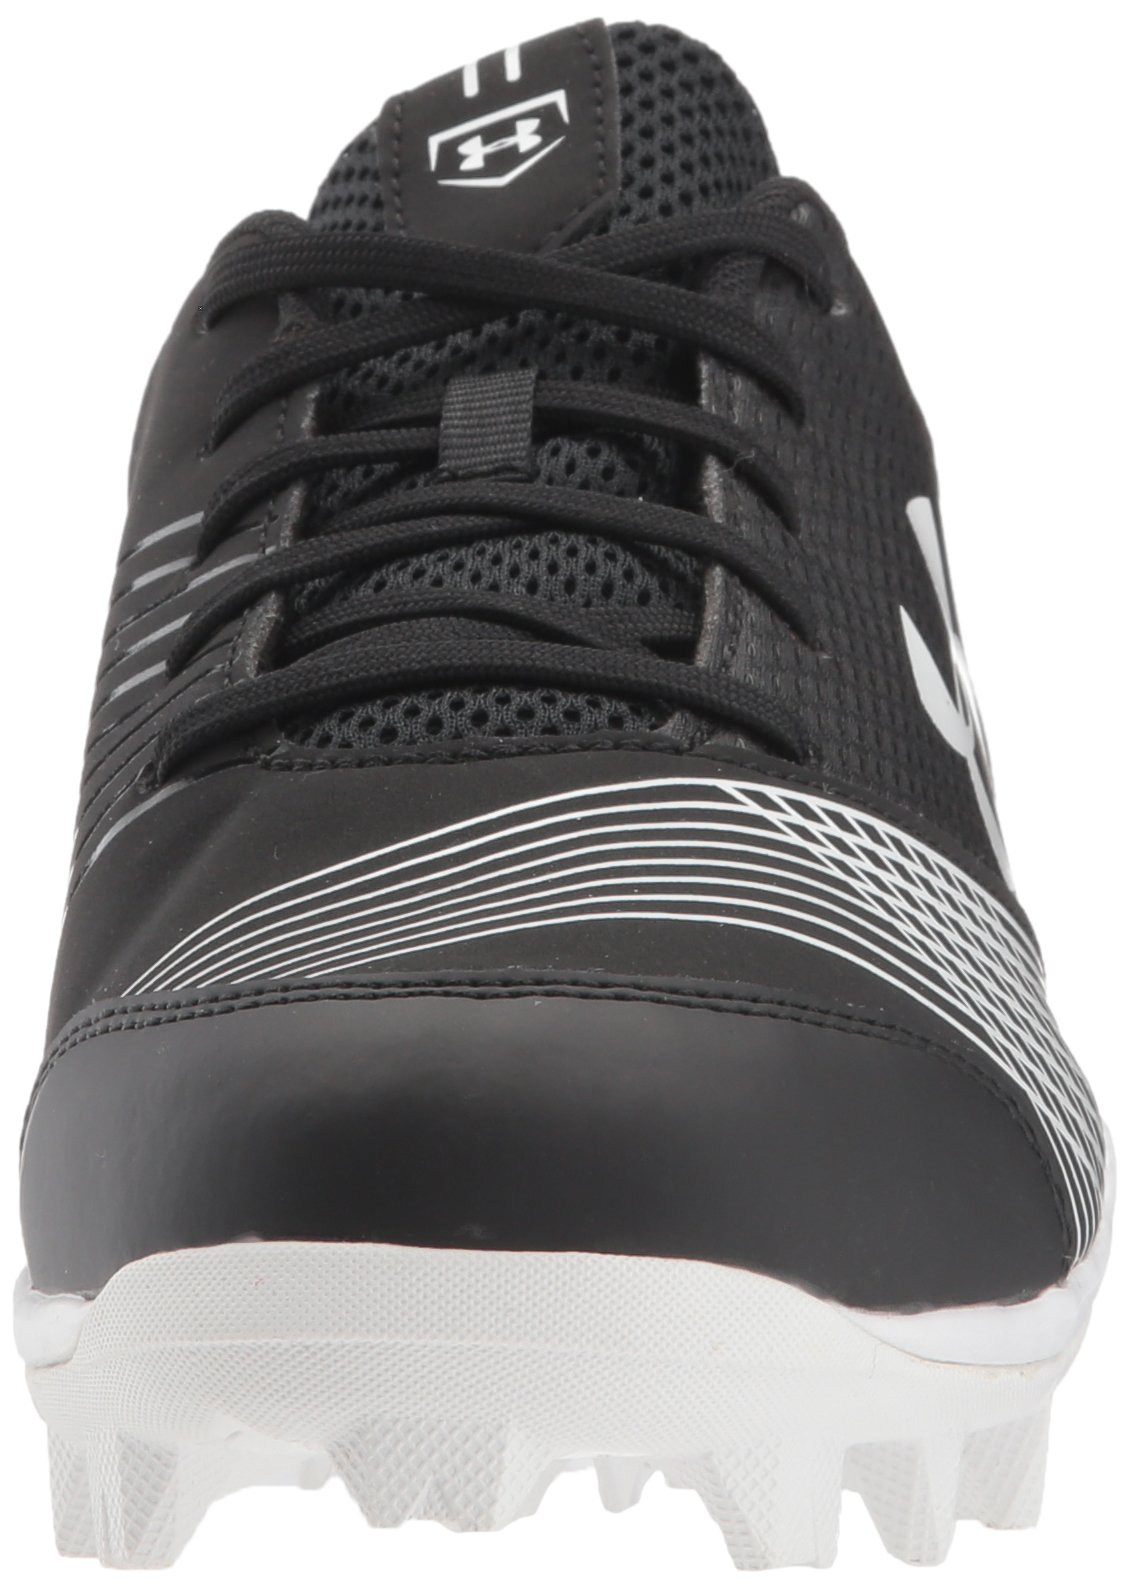 Under Armour Women's Glyde RM Softball Shoe 011/Black, 7 by Under Armour (Image #4)